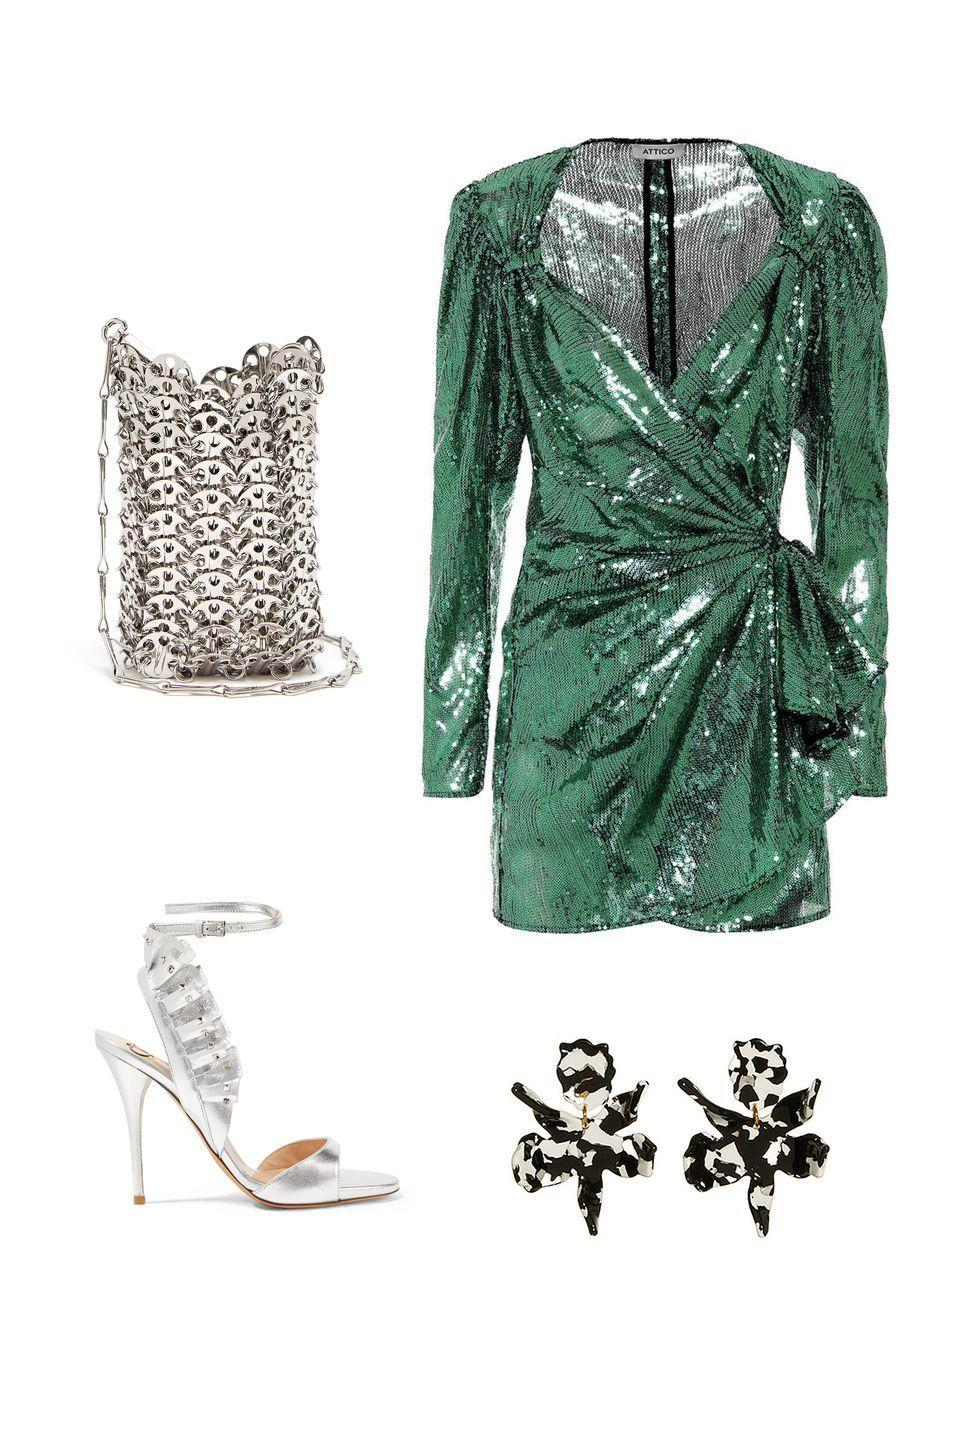 """<p>City weddings in the couple's favorite after hours spot require dance-floor-ready dresses and accessory pieces that catch the light. Embrace this season's nod to eras past with a sequin mini dress and long sleeves.</p><p><em><strong>Attico </strong>mini dress, $660, <a rel=""""nofollow noopener"""" href=""""https://shop.harpersbazaar.com/designers/attico/green-sequin-mini-dress-26965.html"""" target=""""_blank"""" data-ylk=""""slk:shopBAZAAR.com"""" class=""""link rapid-noclick-resp"""">shopBAZAAR.com</a>; <strong>Valentino Garavani </strong>leather pumps, $698, <a rel=""""nofollow noopener"""" href=""""https://www.mytheresa.com/en-de/valentino-valentino-garavani-rockstud-leather-pumps-1051578.html?catref=category"""" target=""""_blank"""" data-ylk=""""slk:mytheresa.com"""" class=""""link rapid-noclick-resp"""">mytheresa.com</a>; <strong>Lele Sadoughi </strong>earrings, $125, <a rel=""""nofollow noopener"""" href=""""https://shop.harpersbazaar.com/designers/lele-sadoughi/small-paper-lily-earring-black-marble-24189.html"""" target=""""_blank"""" data-ylk=""""slk:shopBAZAAR.com"""" class=""""link rapid-noclick-resp"""">shopBAZAAR.com</a>; <strong>Paco Rabanne </strong>clutch, $800, <a rel=""""nofollow noopener"""" href=""""https://www.matchesfashion.com/us/products/Paco-Rabanne-Iconic-mini-chain-clutch-1219559"""" target=""""_blank"""" data-ylk=""""slk:matchesfashion.com"""" class=""""link rapid-noclick-resp"""">matchesfashion.com</a>.</em></p>"""